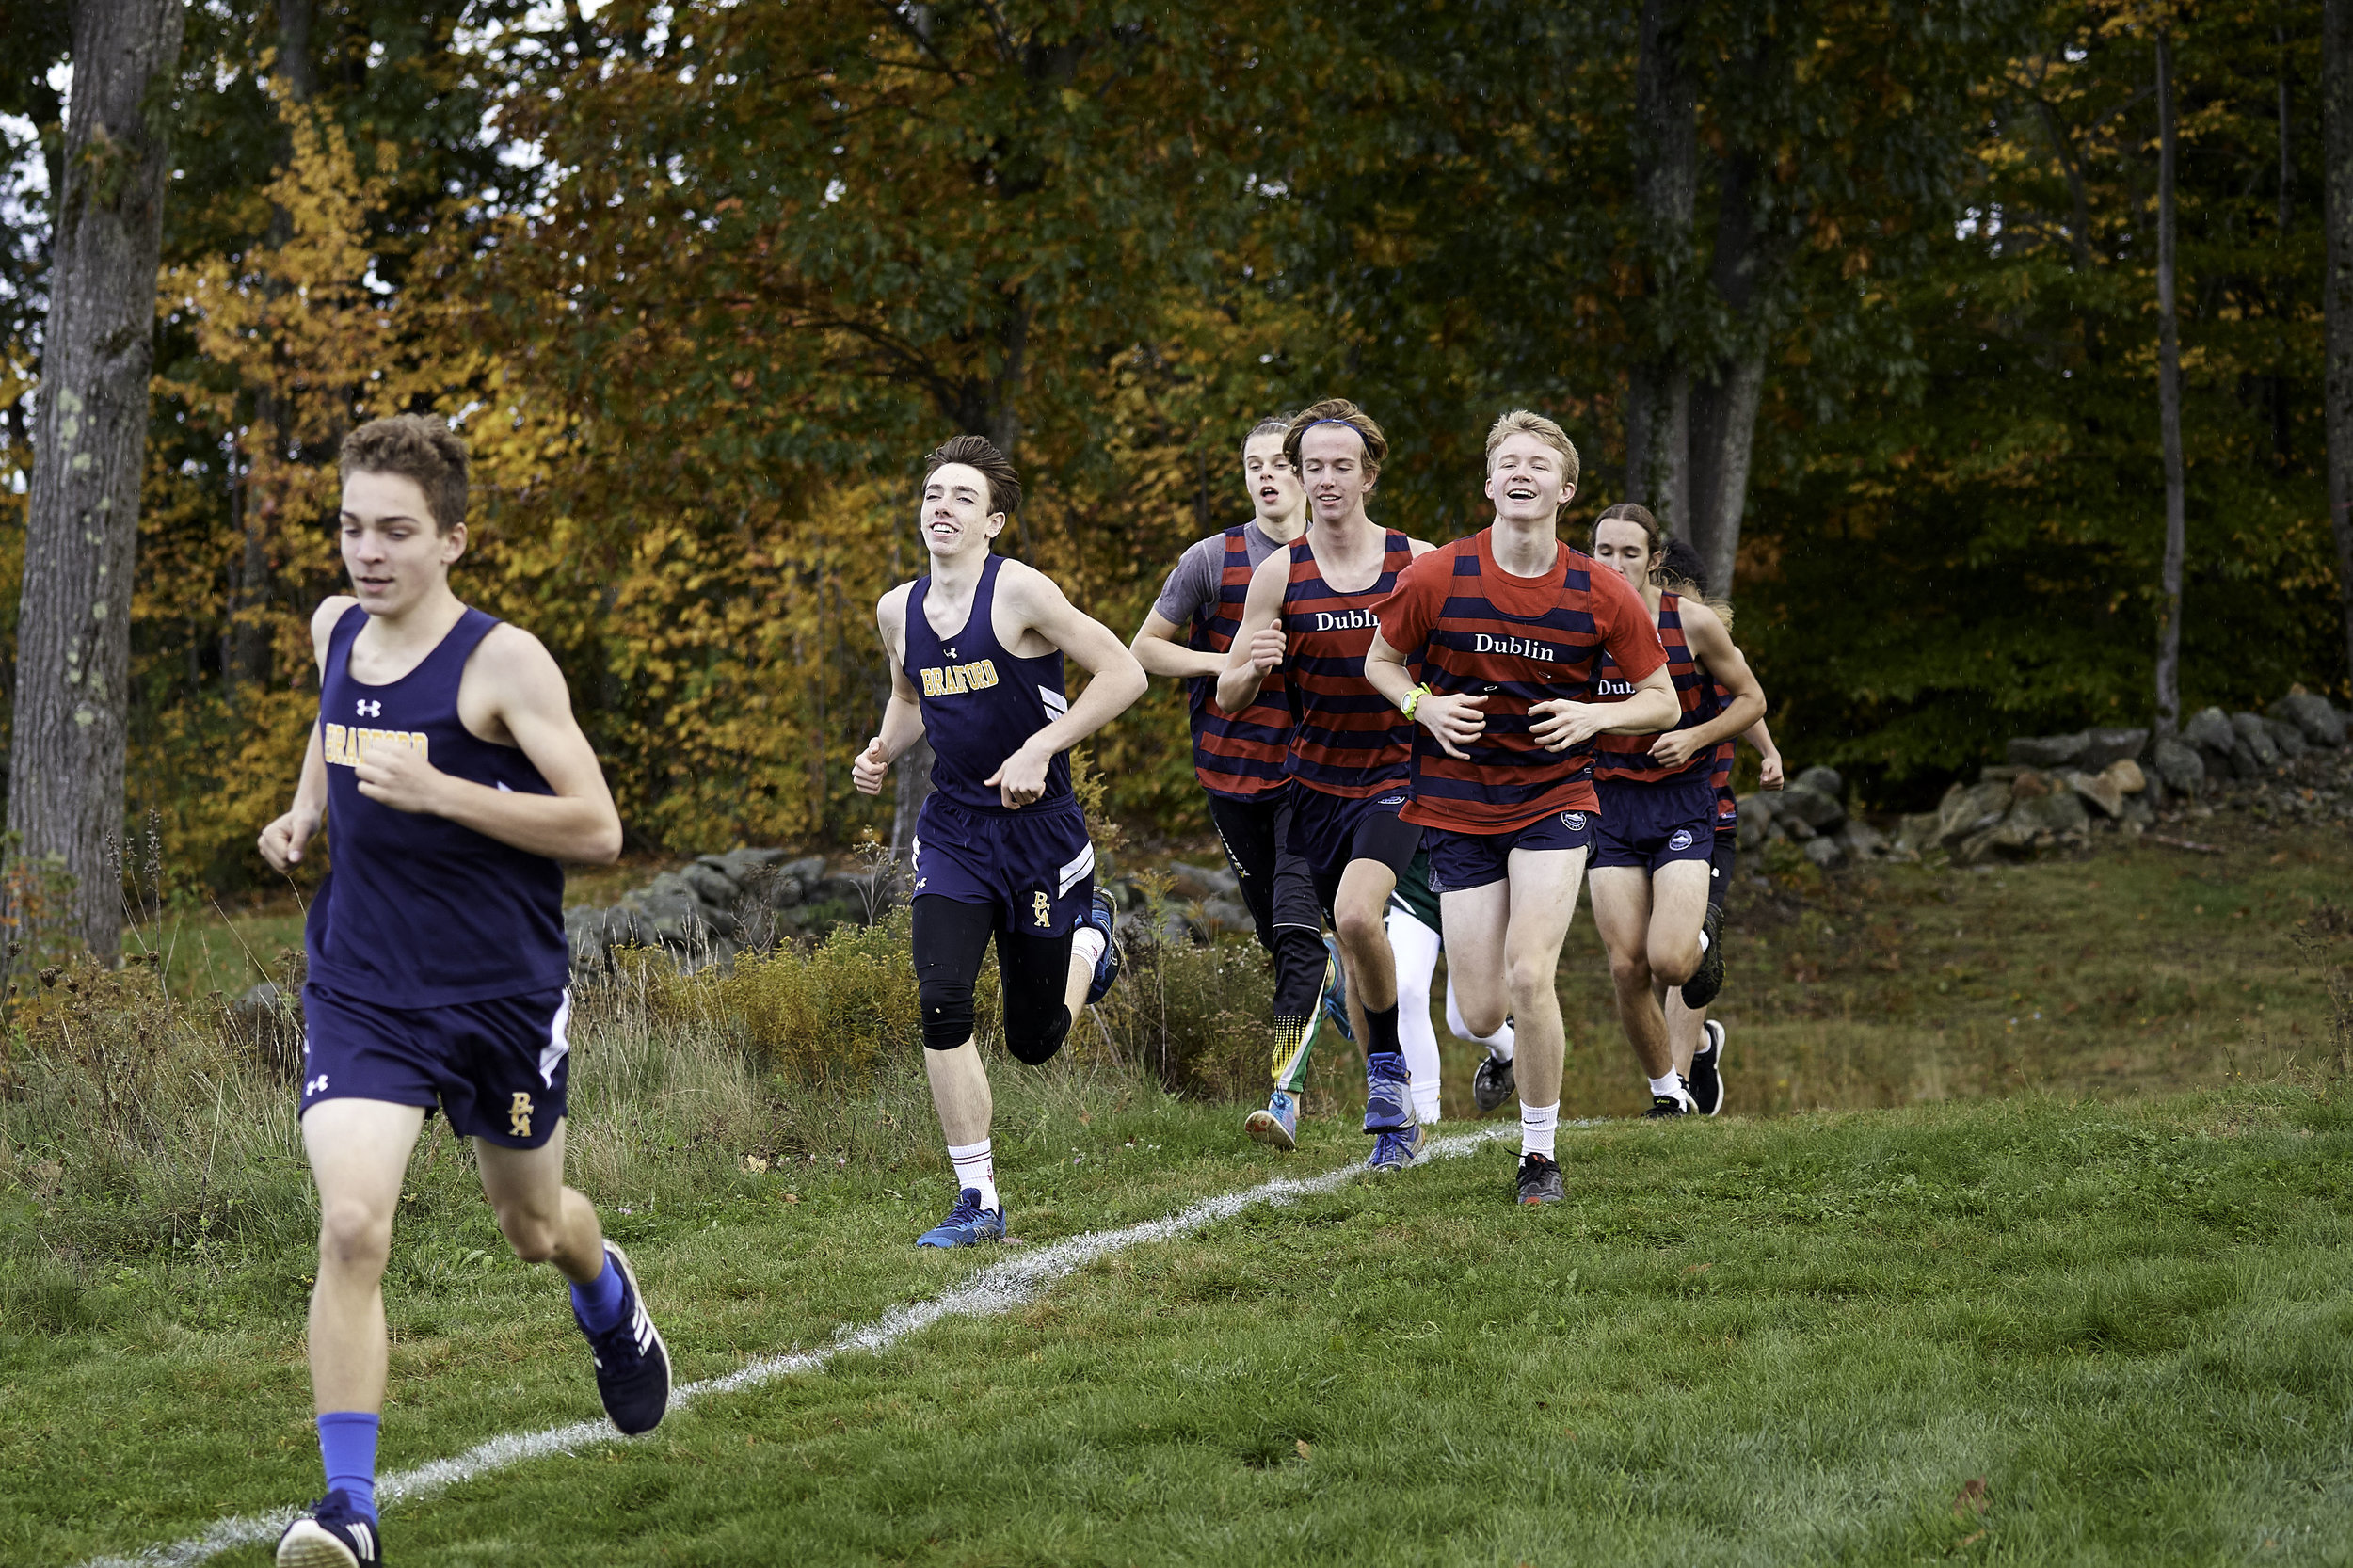 Dublion Invitational - October 12, 2018 - 136450.jpg